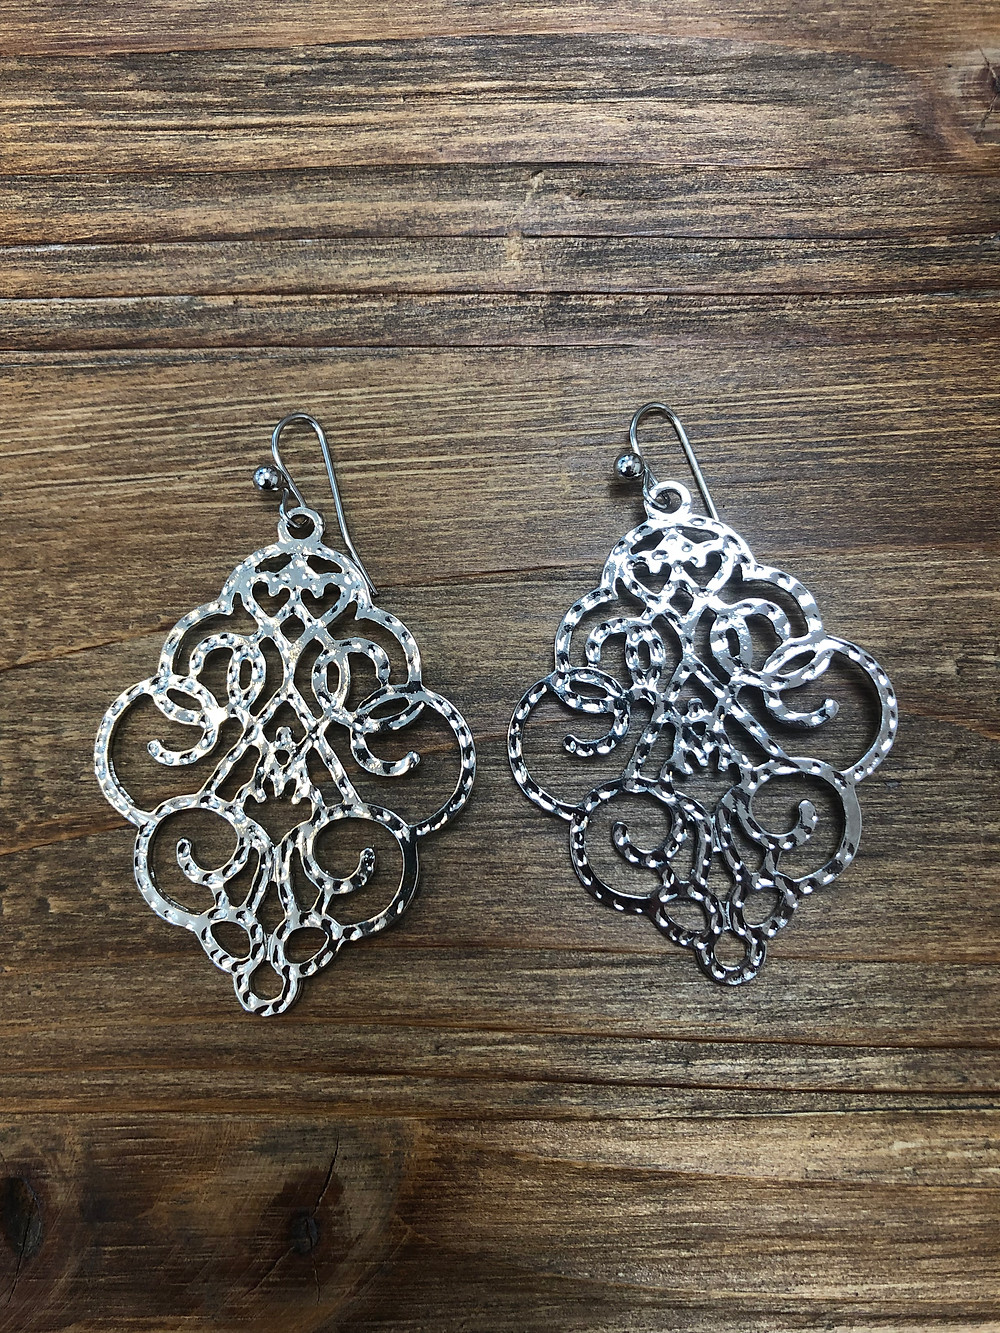 Dangle Earrings from The Brave and Beautiful Boutique